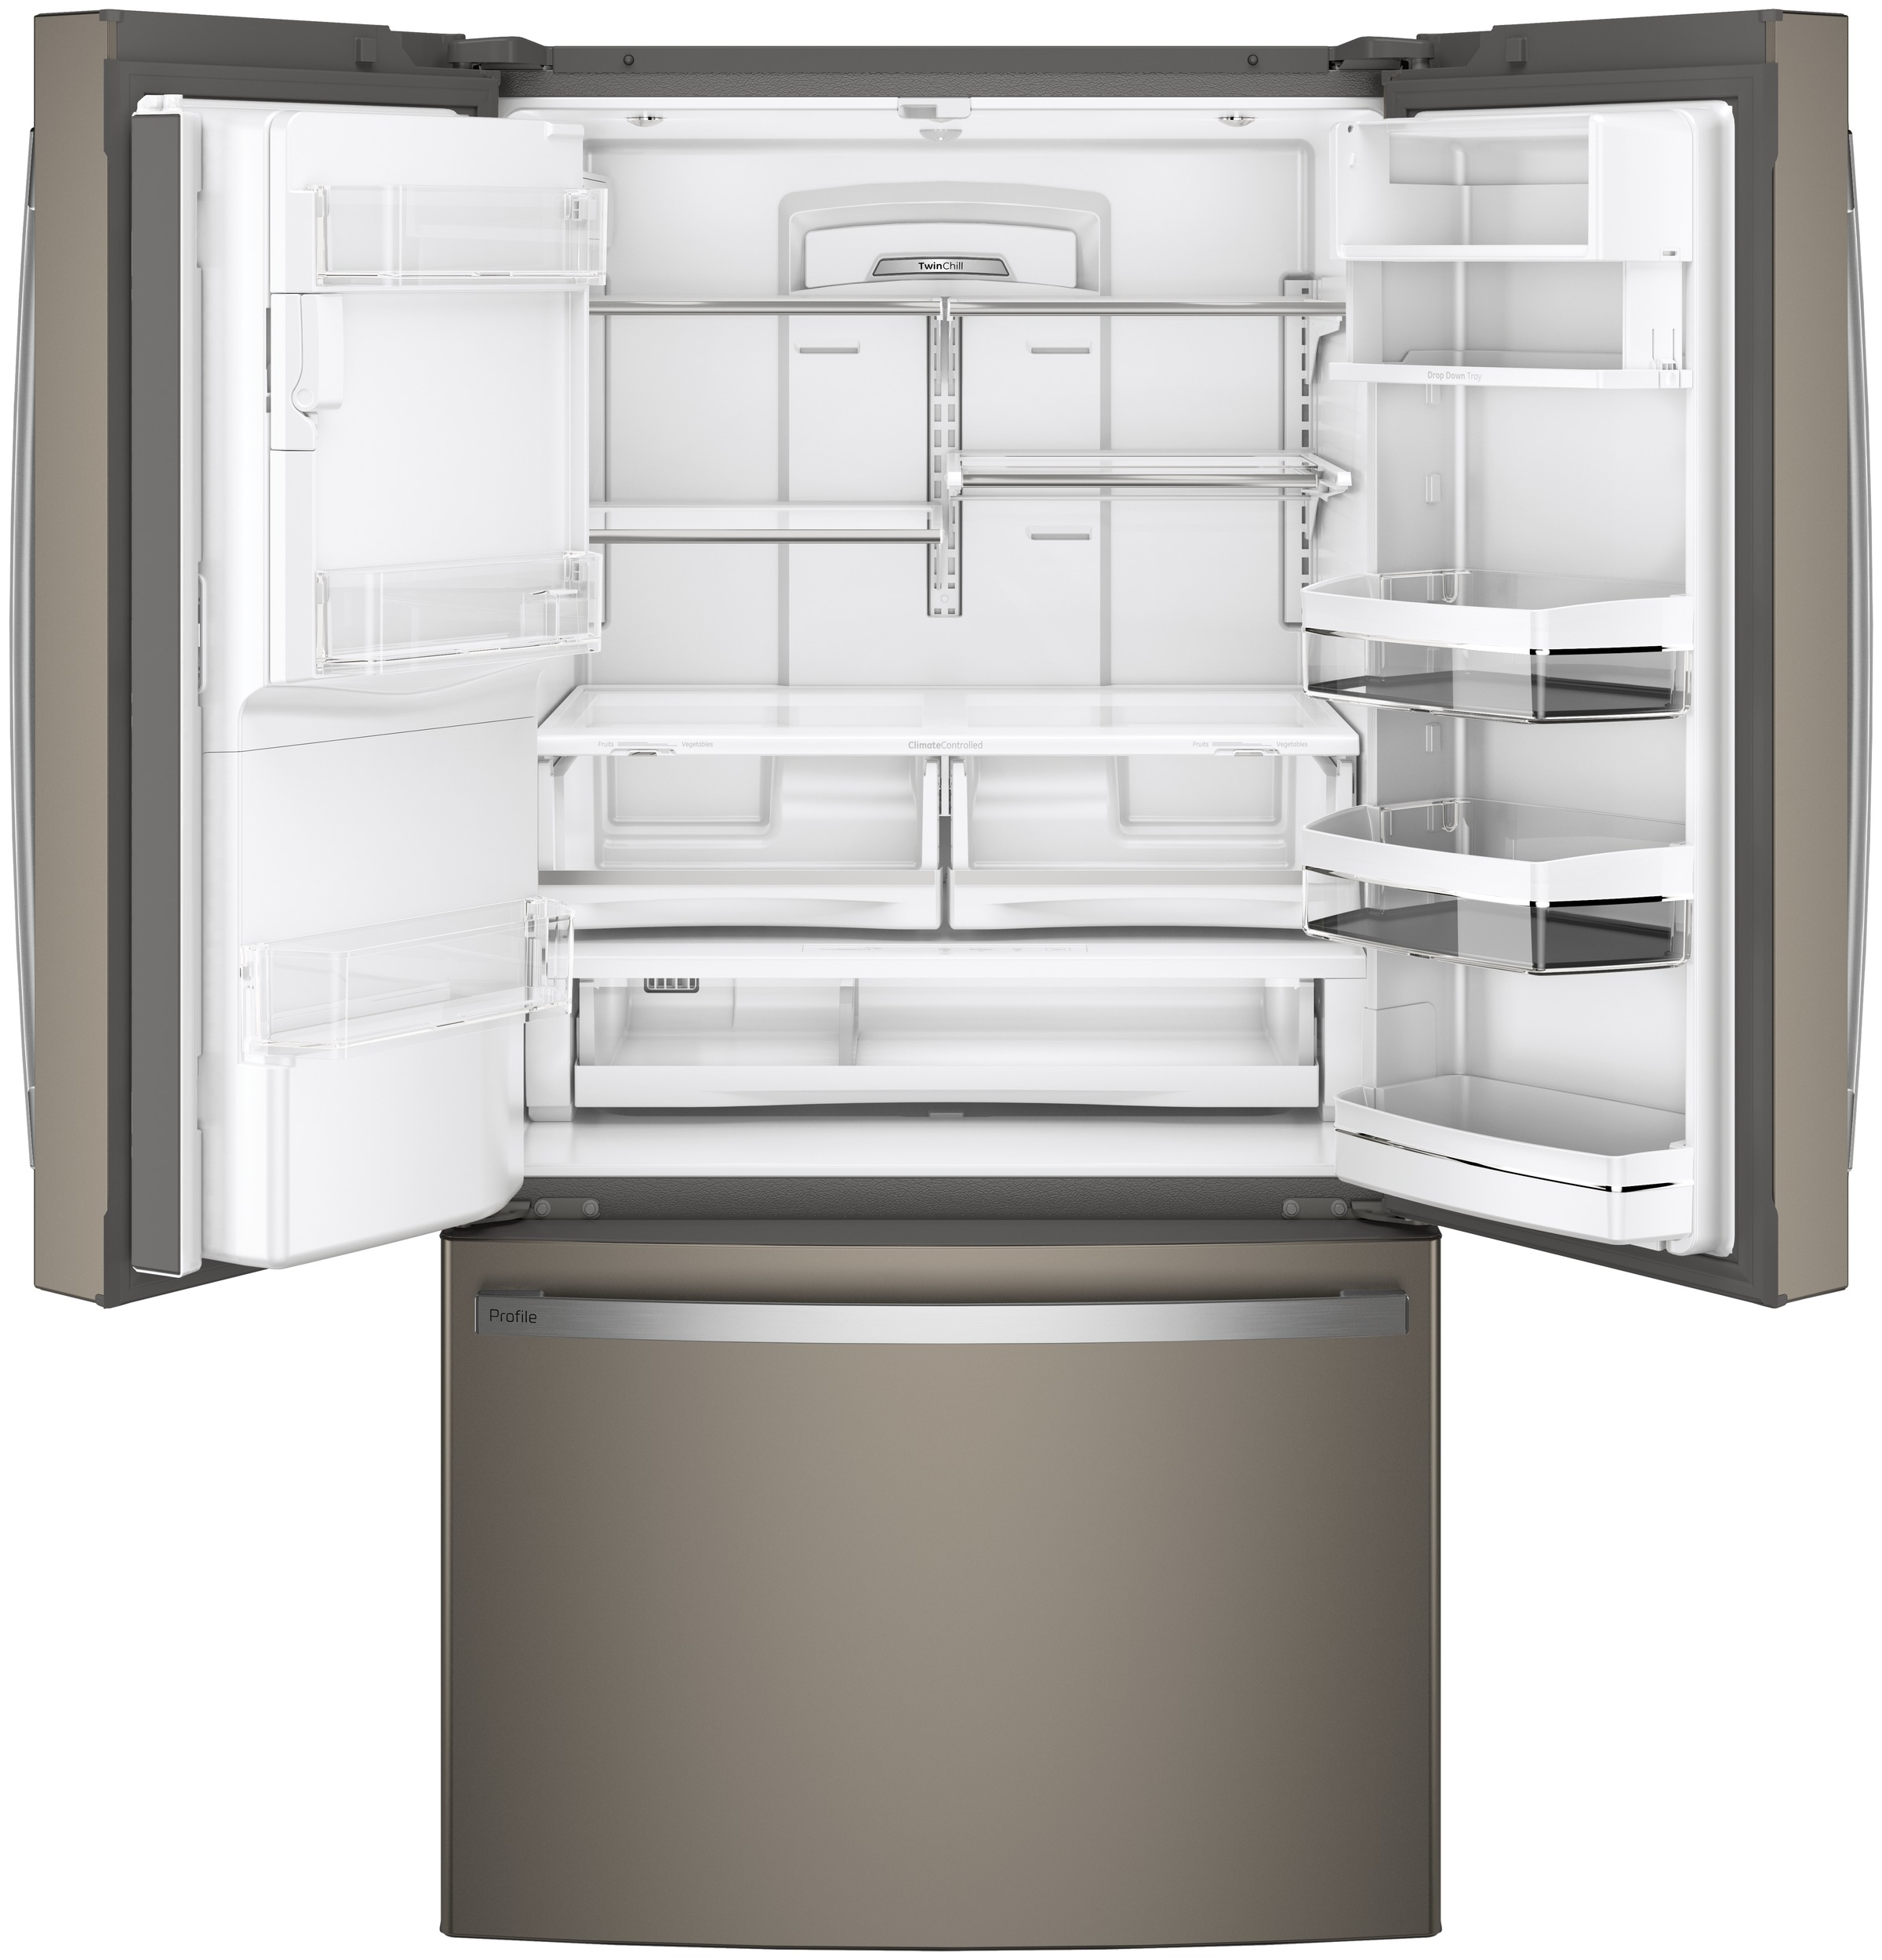 Model: PFE28KMKES | GE Profile GE Profile™ Series ENERGY STAR® 27.7 Cu. Ft. French-Door Refrigerator with Hands-Free AutoFill